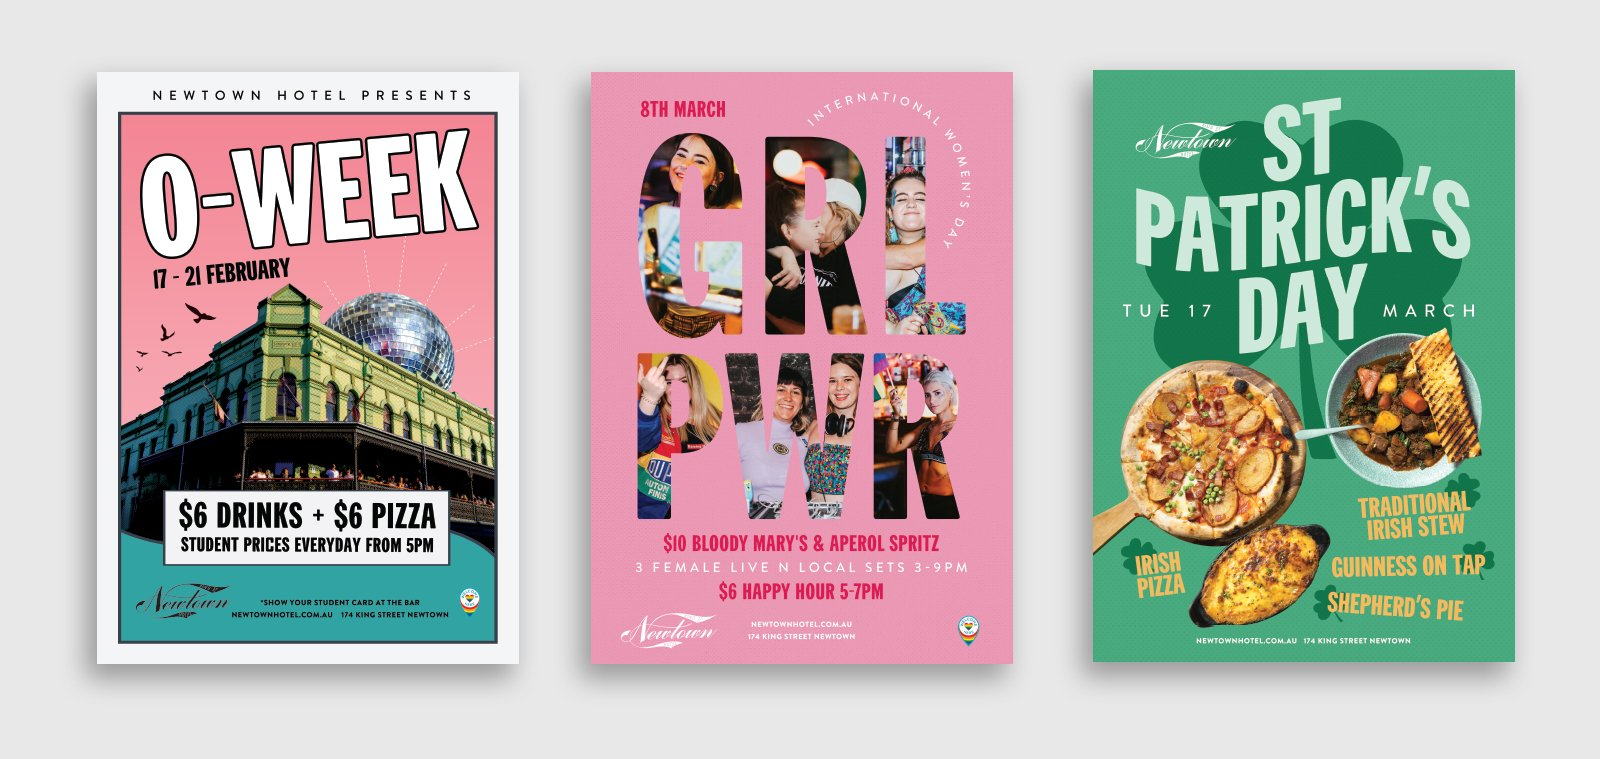 three different poster designs for events at the newtown hotel